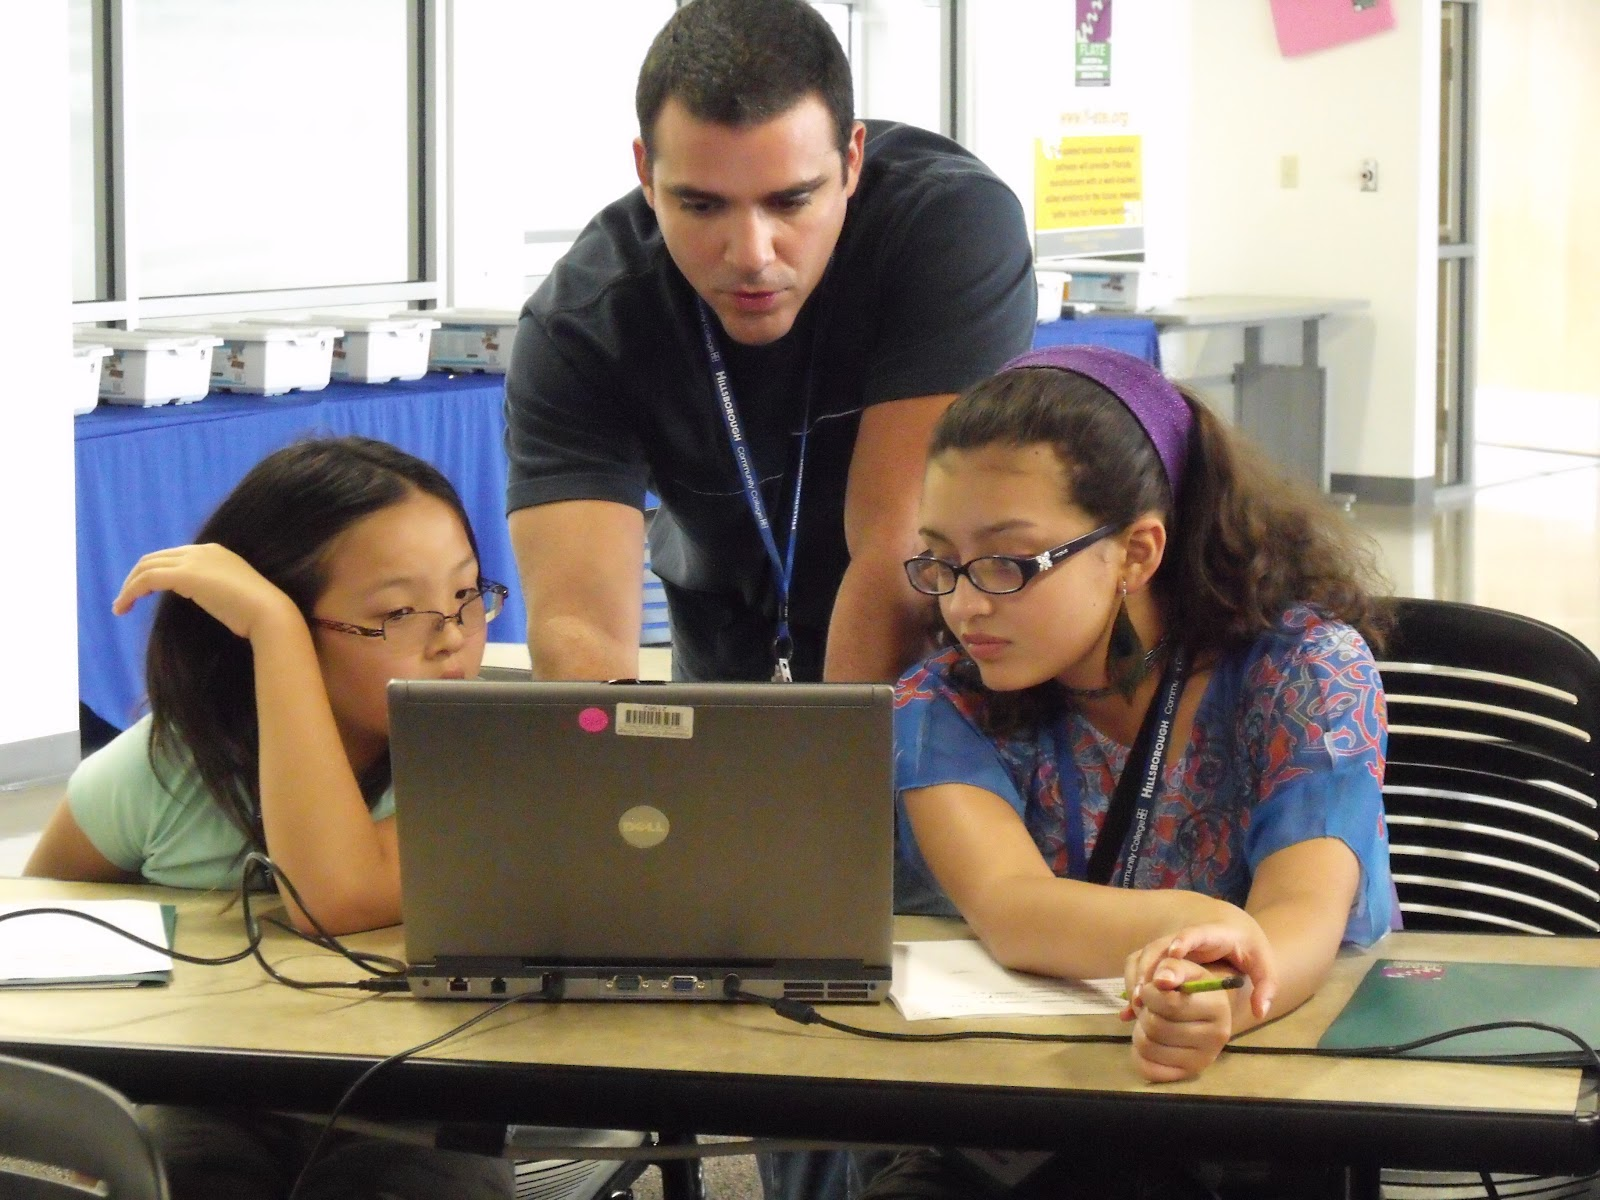 flate s summer camps make for a stemtastic summer florida camp season kicks into top gear girls only introductory level camp from 18 22 flate will also offer an additional week long introductory camp